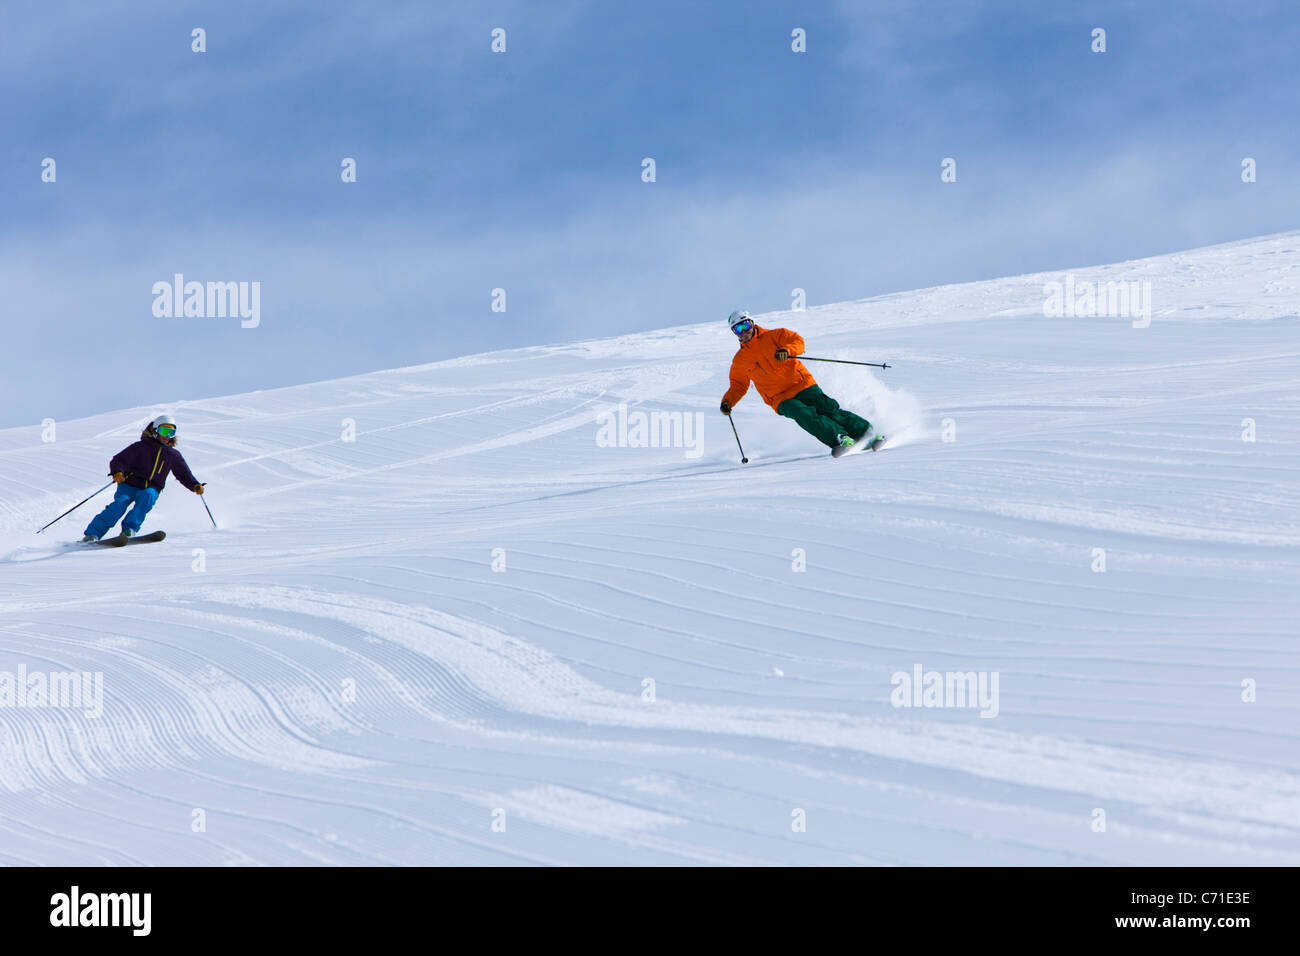 A male and female alpine skier link groomer turns on sunny day in Colorado. - Stock Image